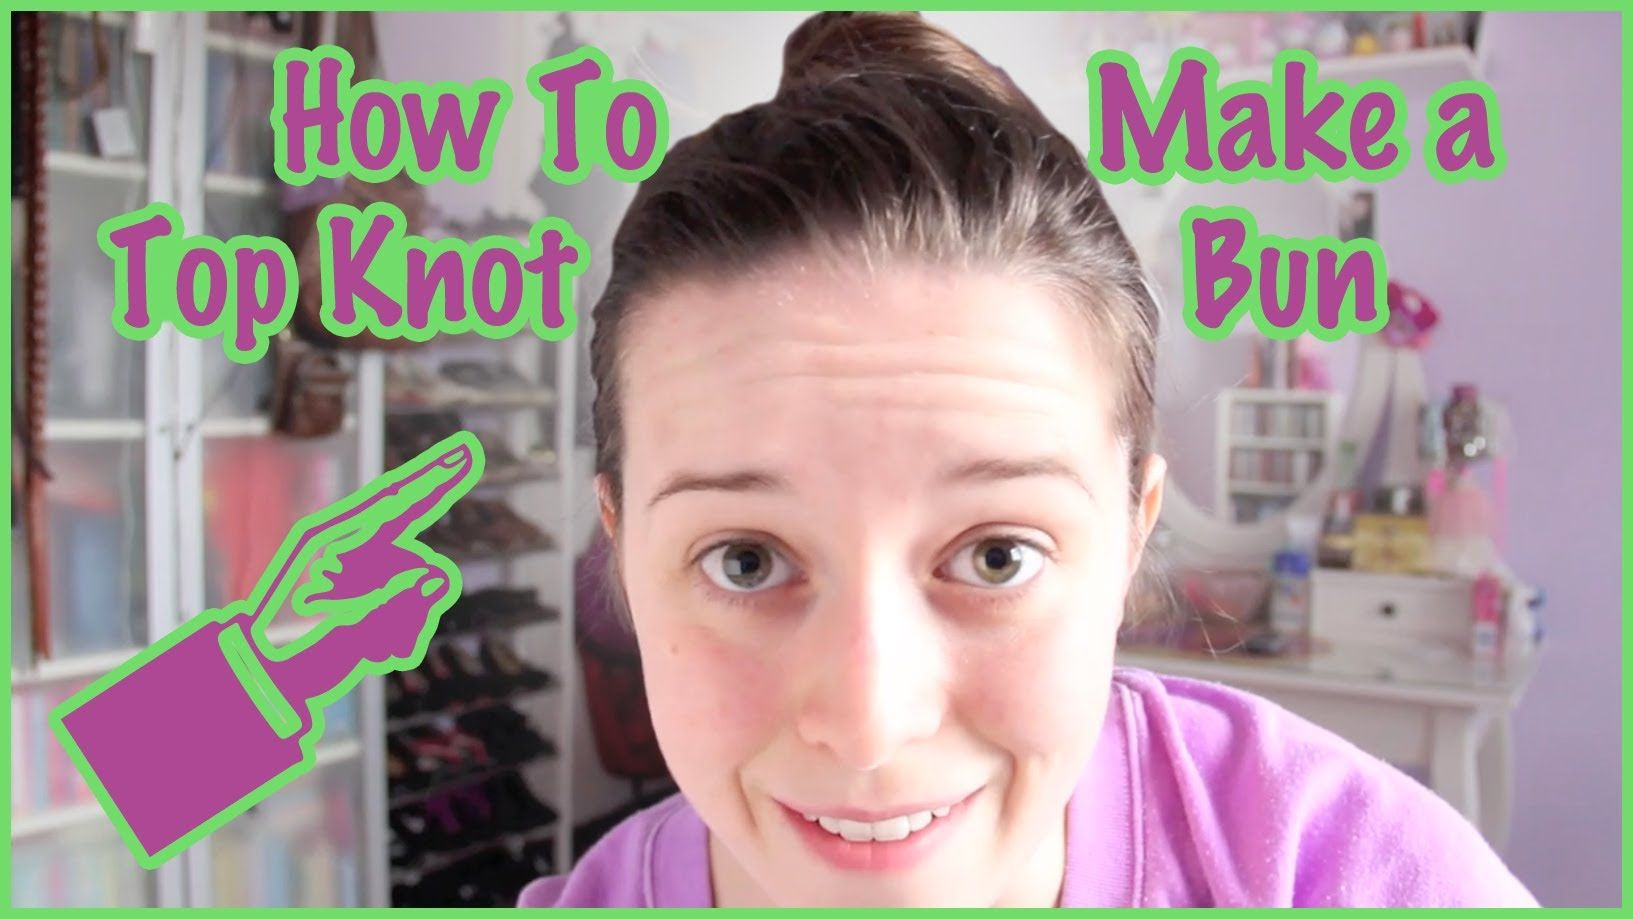 How to Make a Top Knot Bun ✿ Beauty #topknotbunhowto